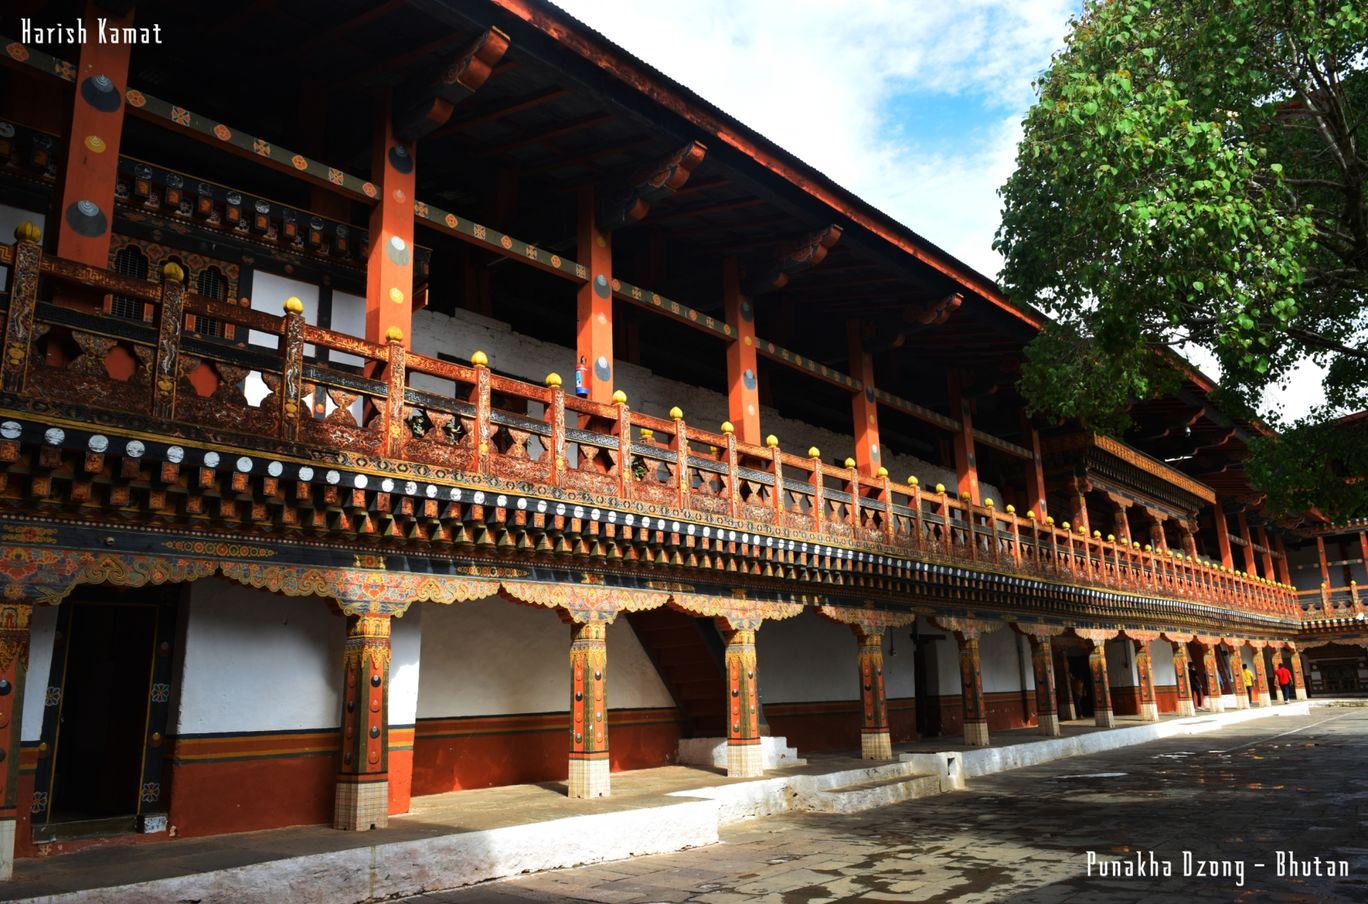 Photo of Bhutan By Harish Kamat